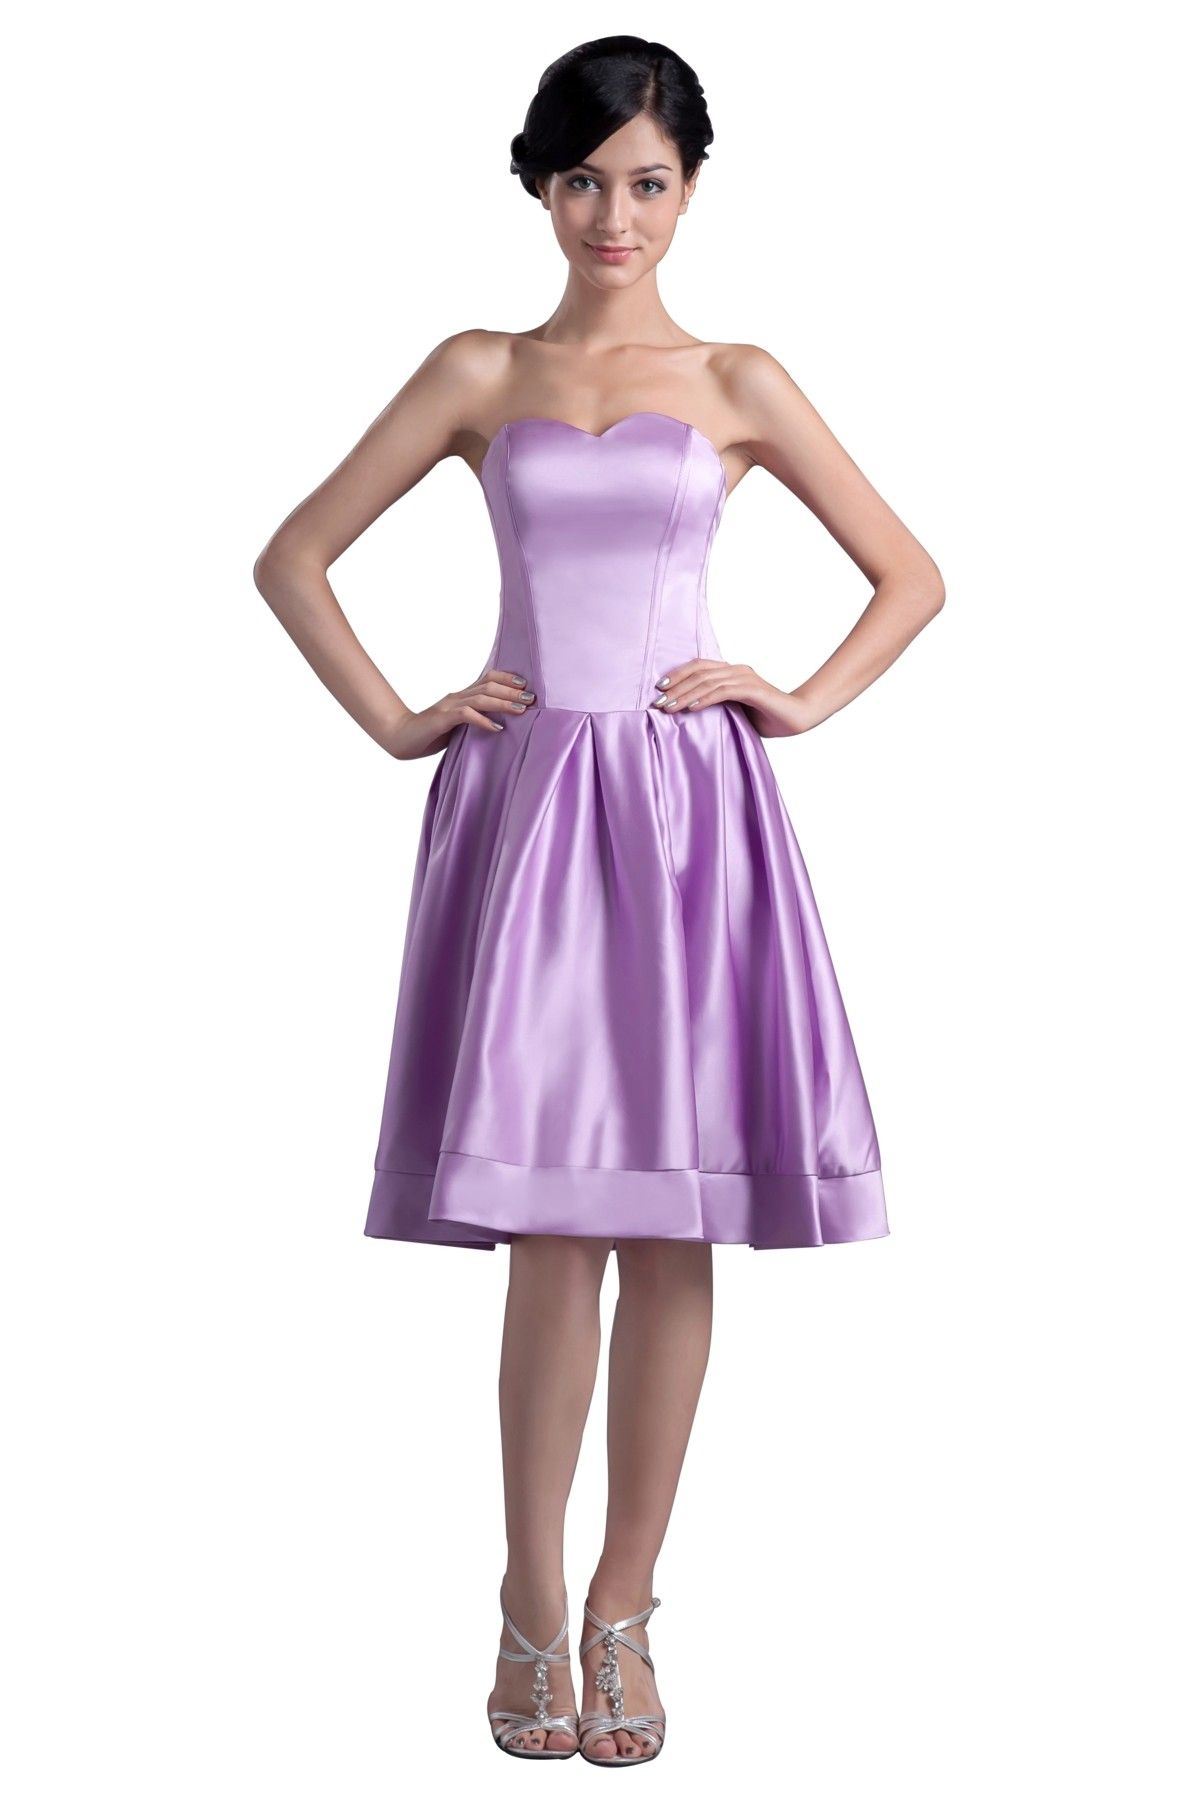 Short prom style wedding dresses  Homecoming Sweetheart Modern Style Satin Bridesmaid Dresses SABD